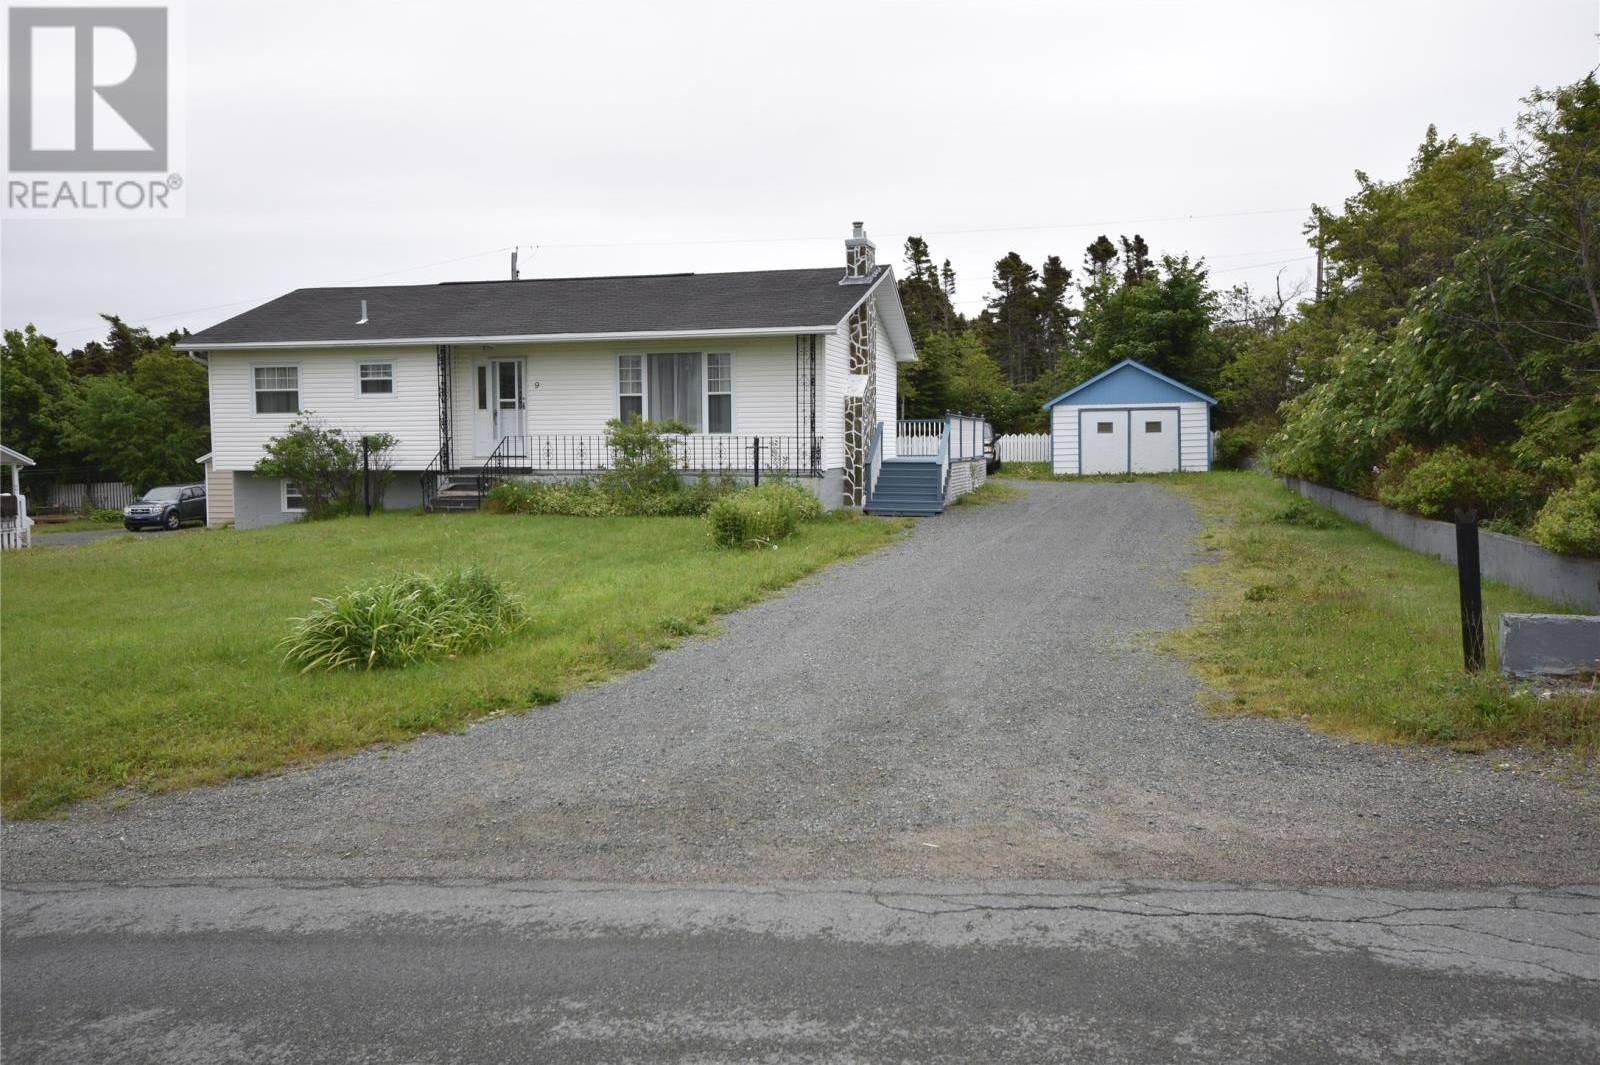 House for sale at 9 Kelliview Ave Conception Bay South Newfoundland - MLS: 1200574